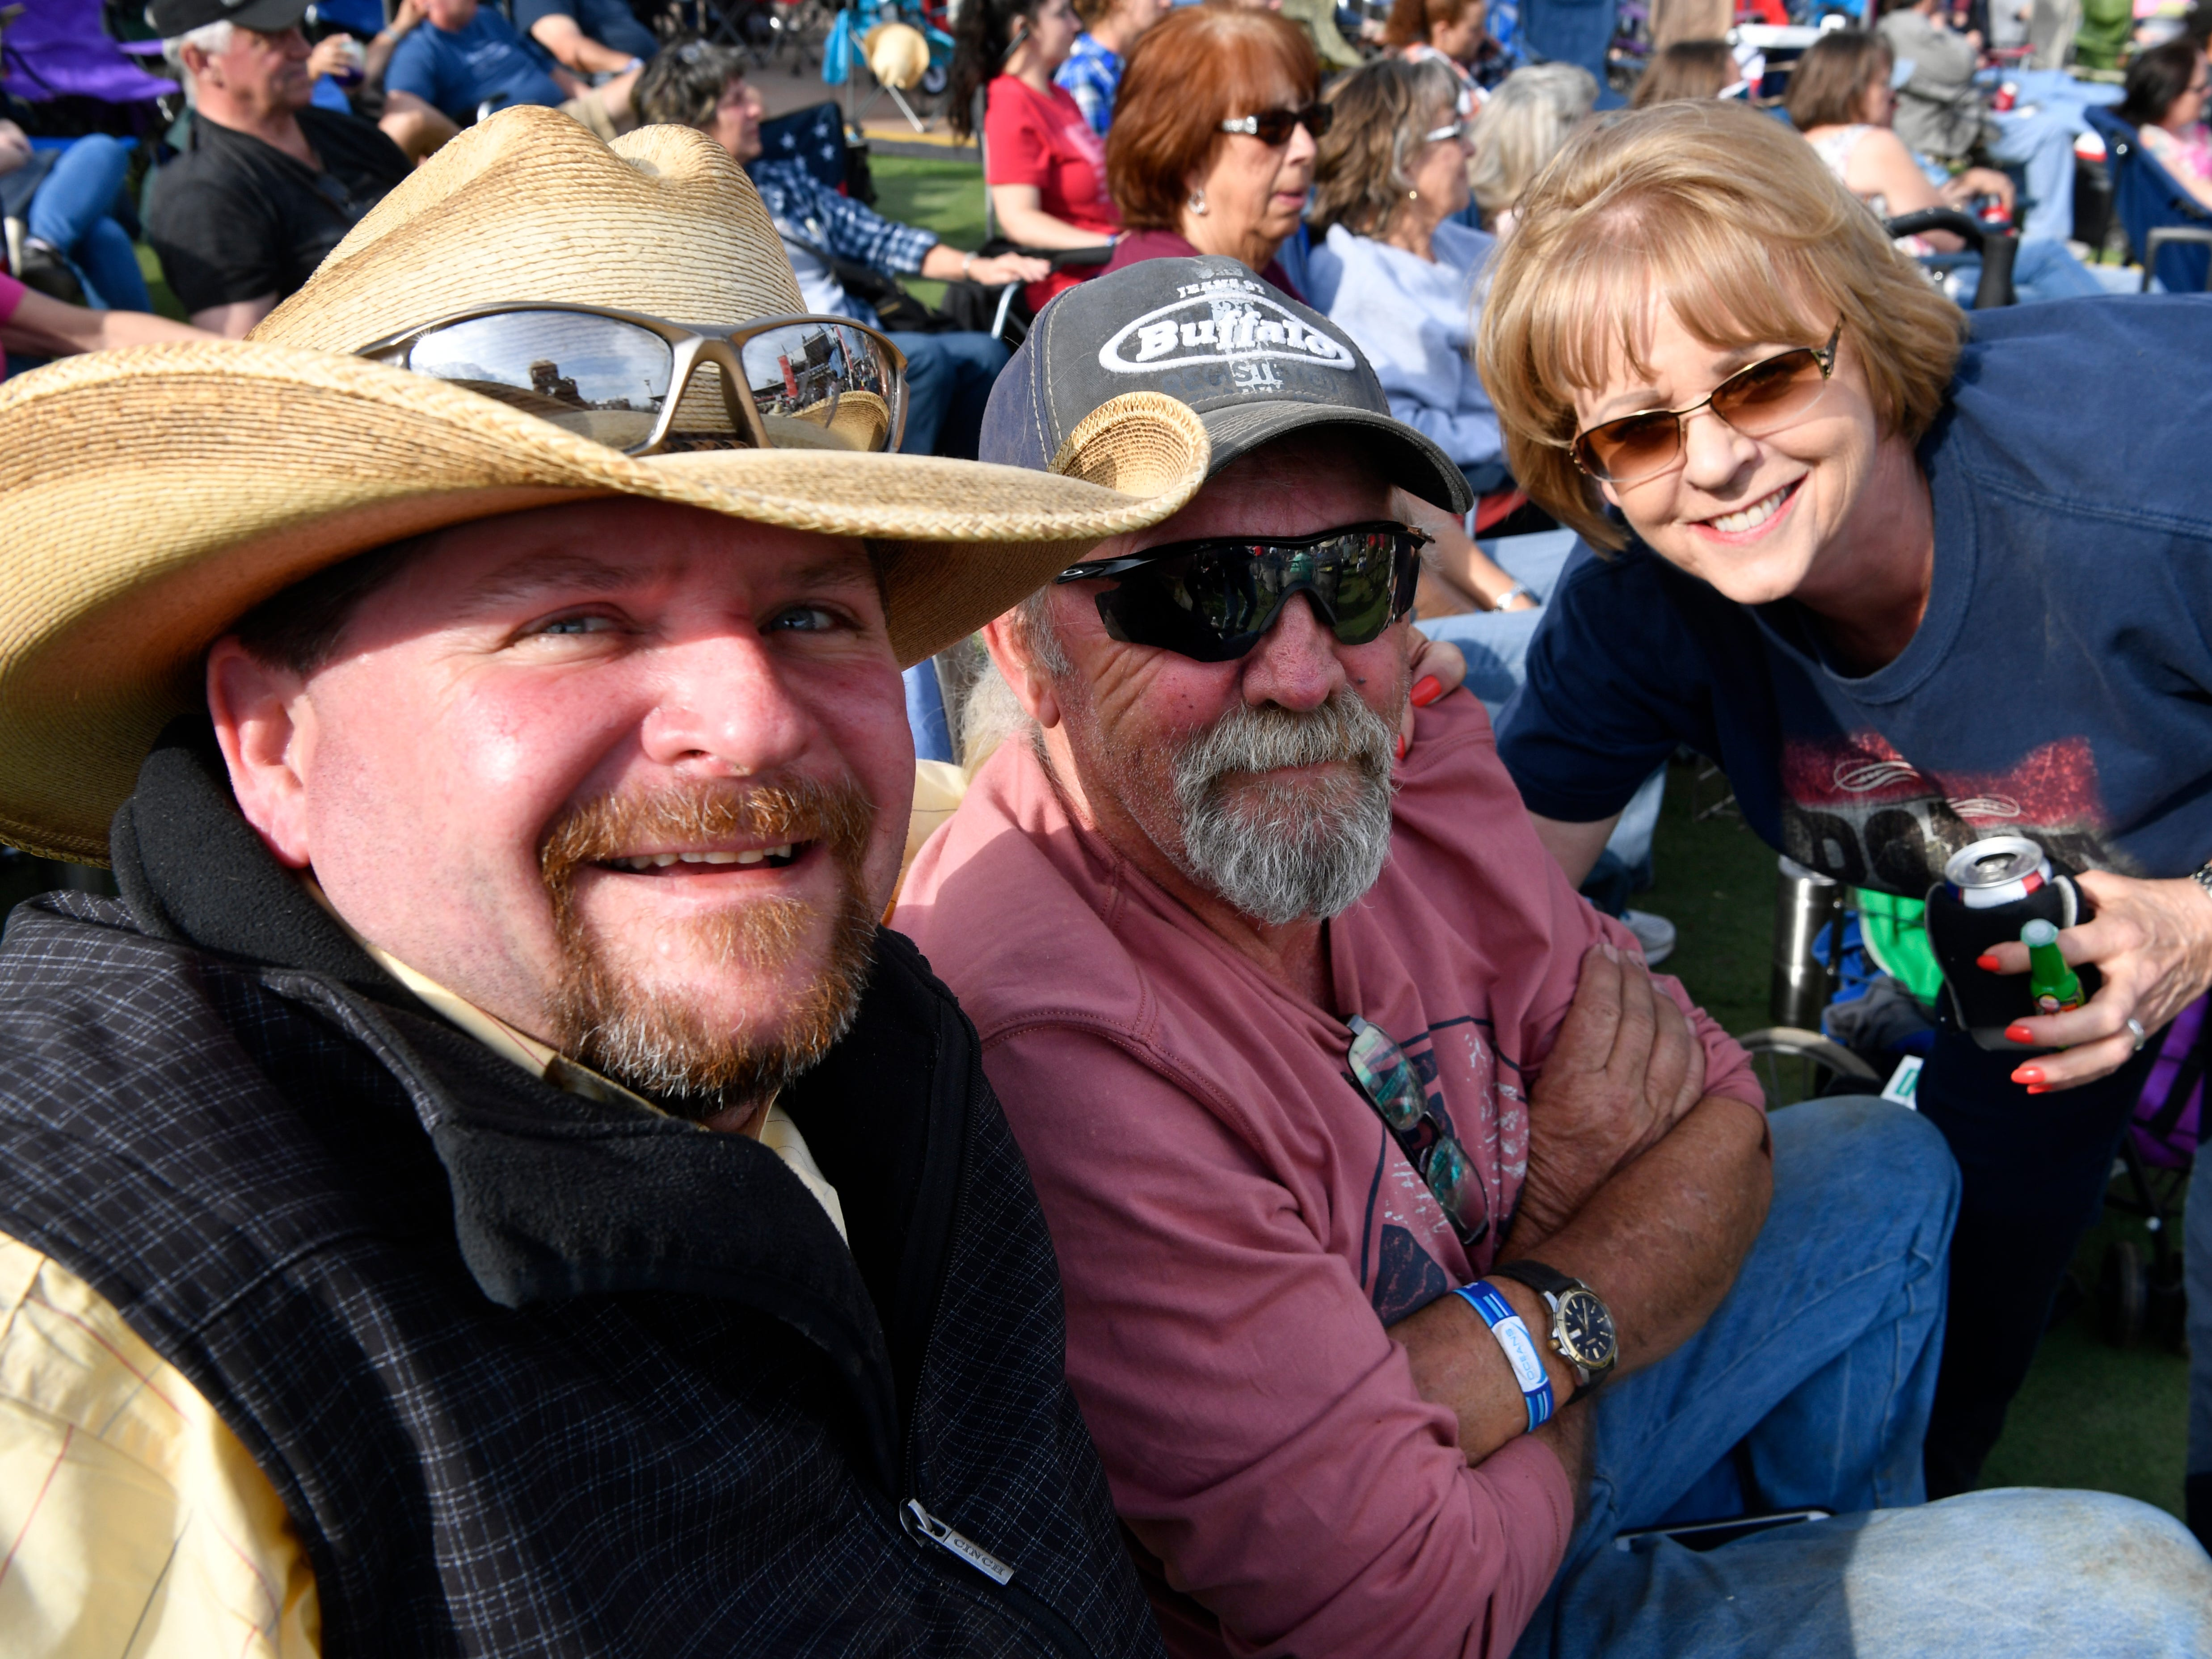 Jeff Yates (left), Altus Stark, and Sharon Wilkinson wait for the next act during Friday's Outlaws & Legends Music Festival March 22, 2019.